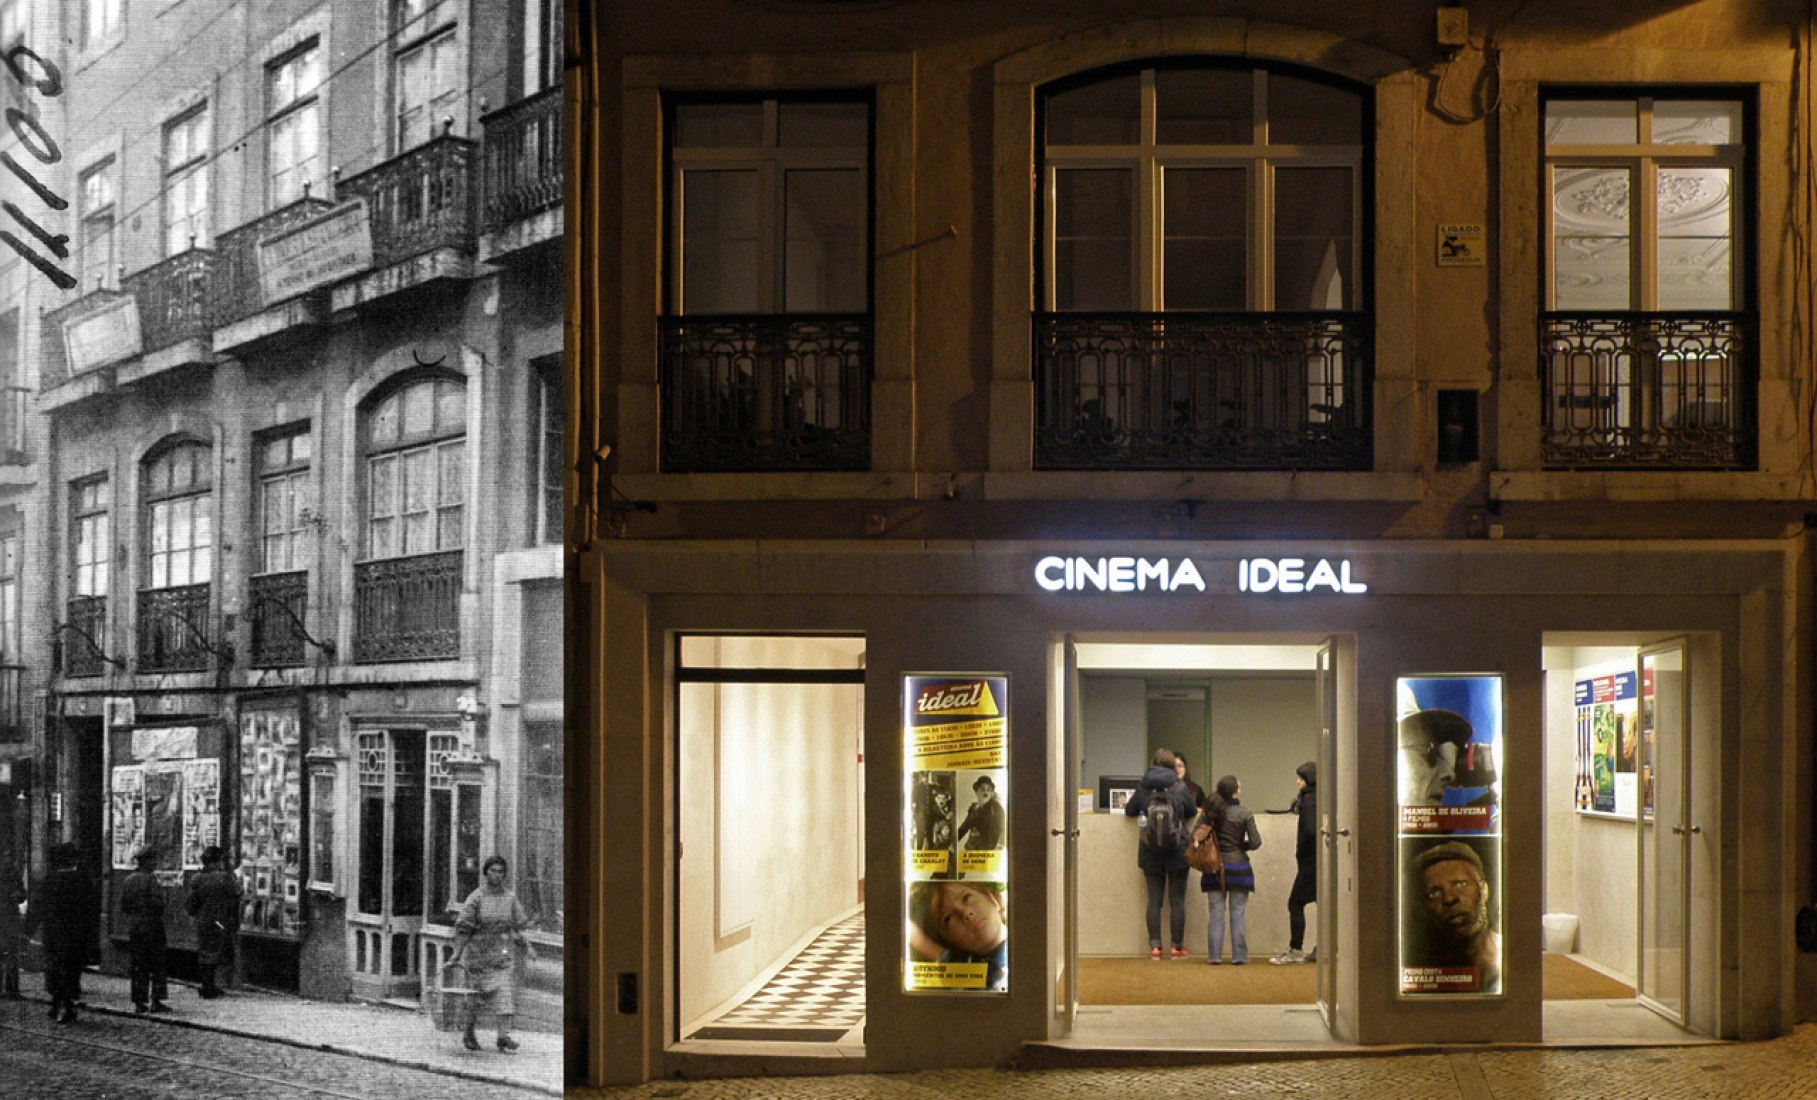 Access in 1930 and today. Cinema Ideal by José Neves. Photography © Fernando Freire.